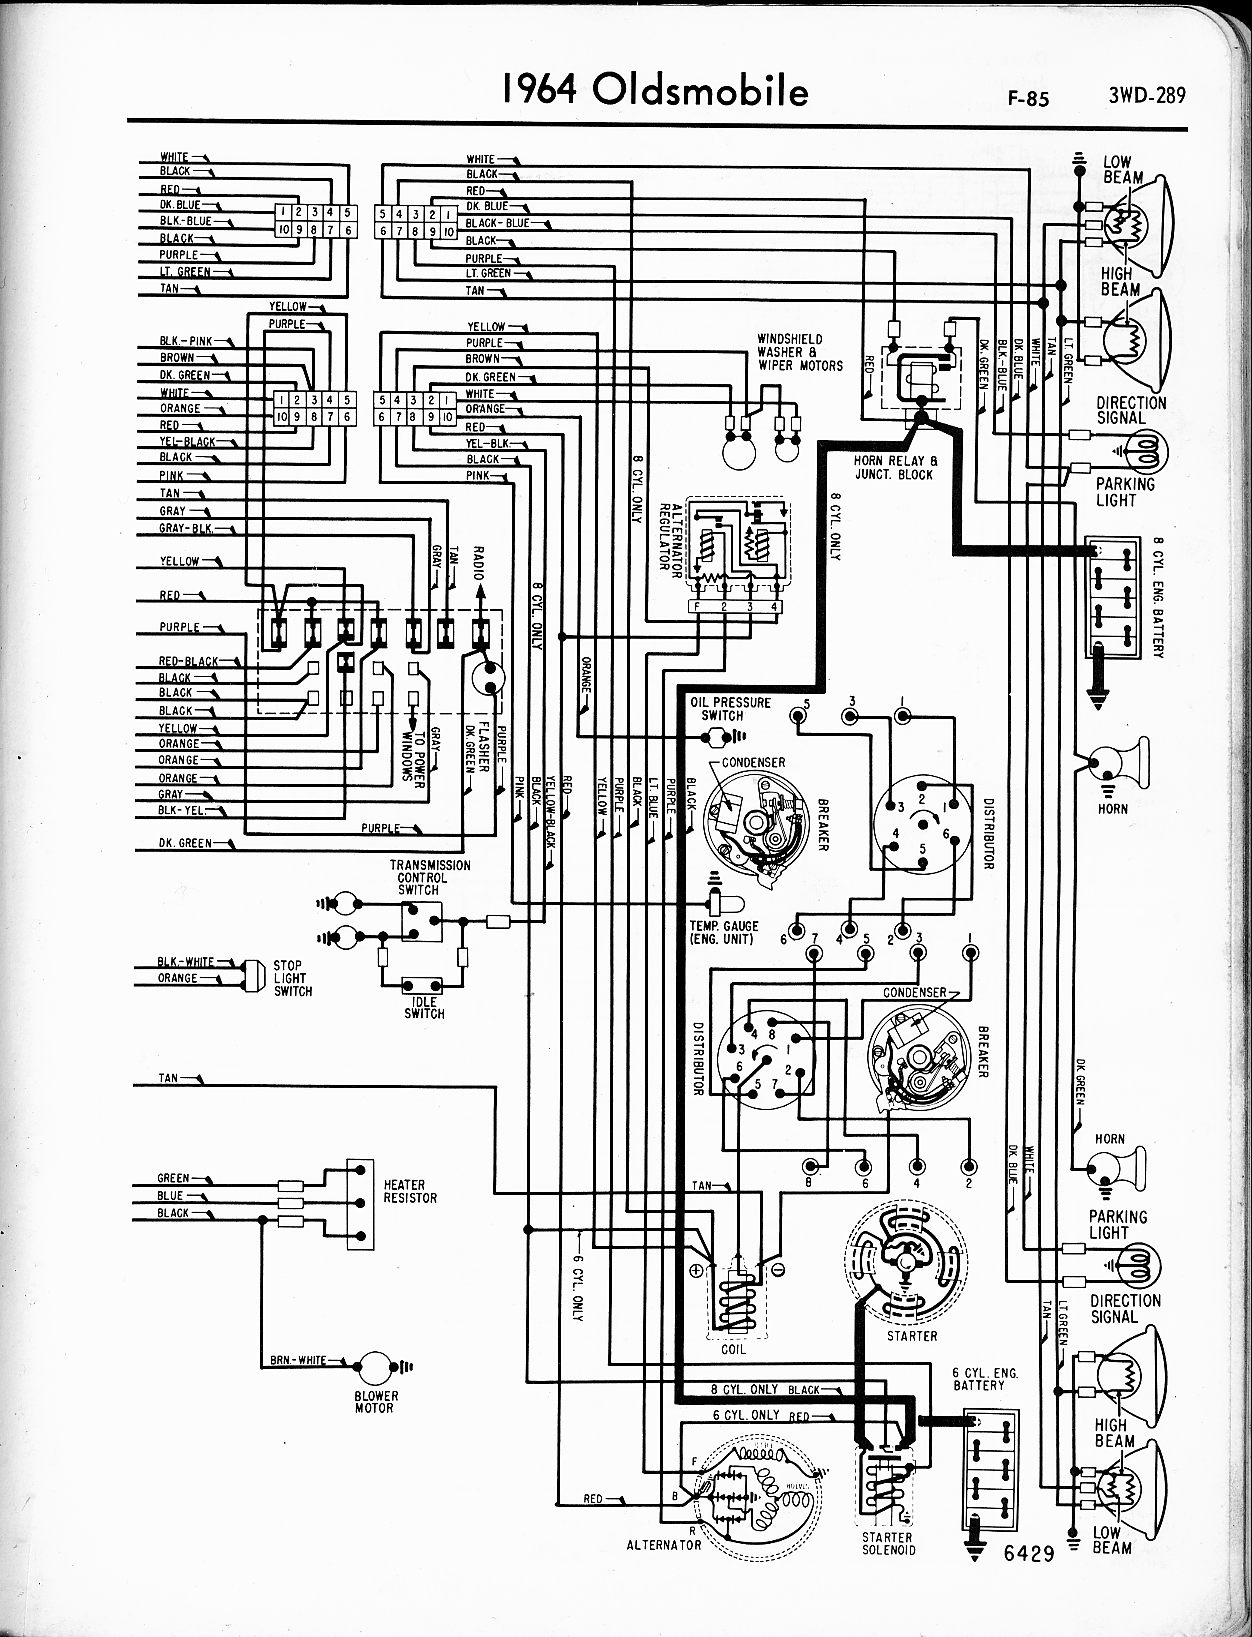 oldsmobile wiring diagrams the old car manual project 1971 chevelle wiring diagram pdf 1968 cutlass wiring diagram oldsmobile